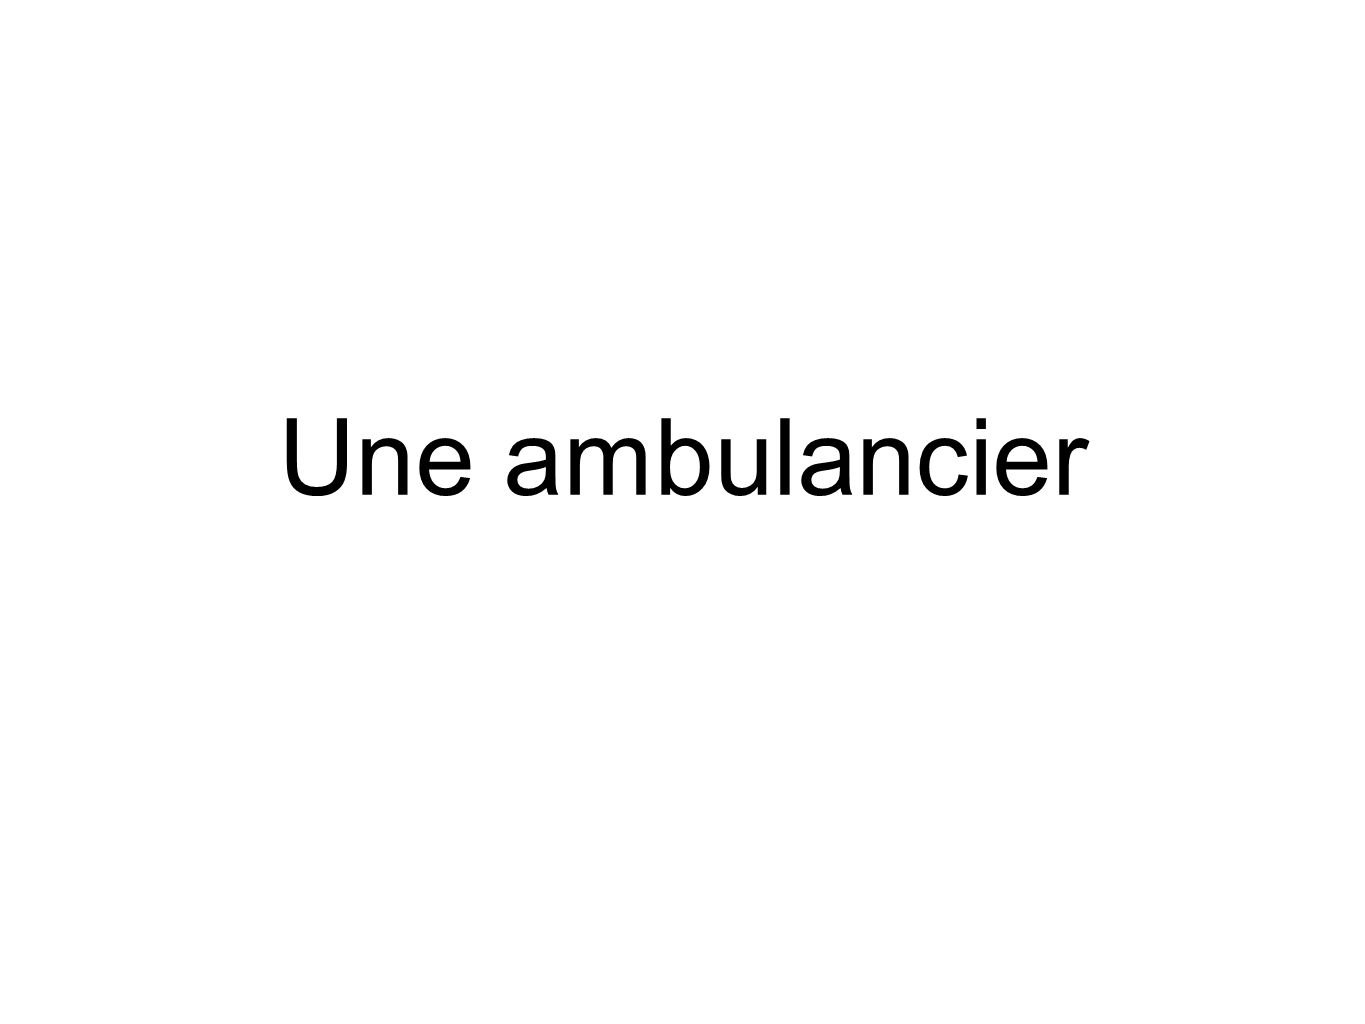 Une ambulancier